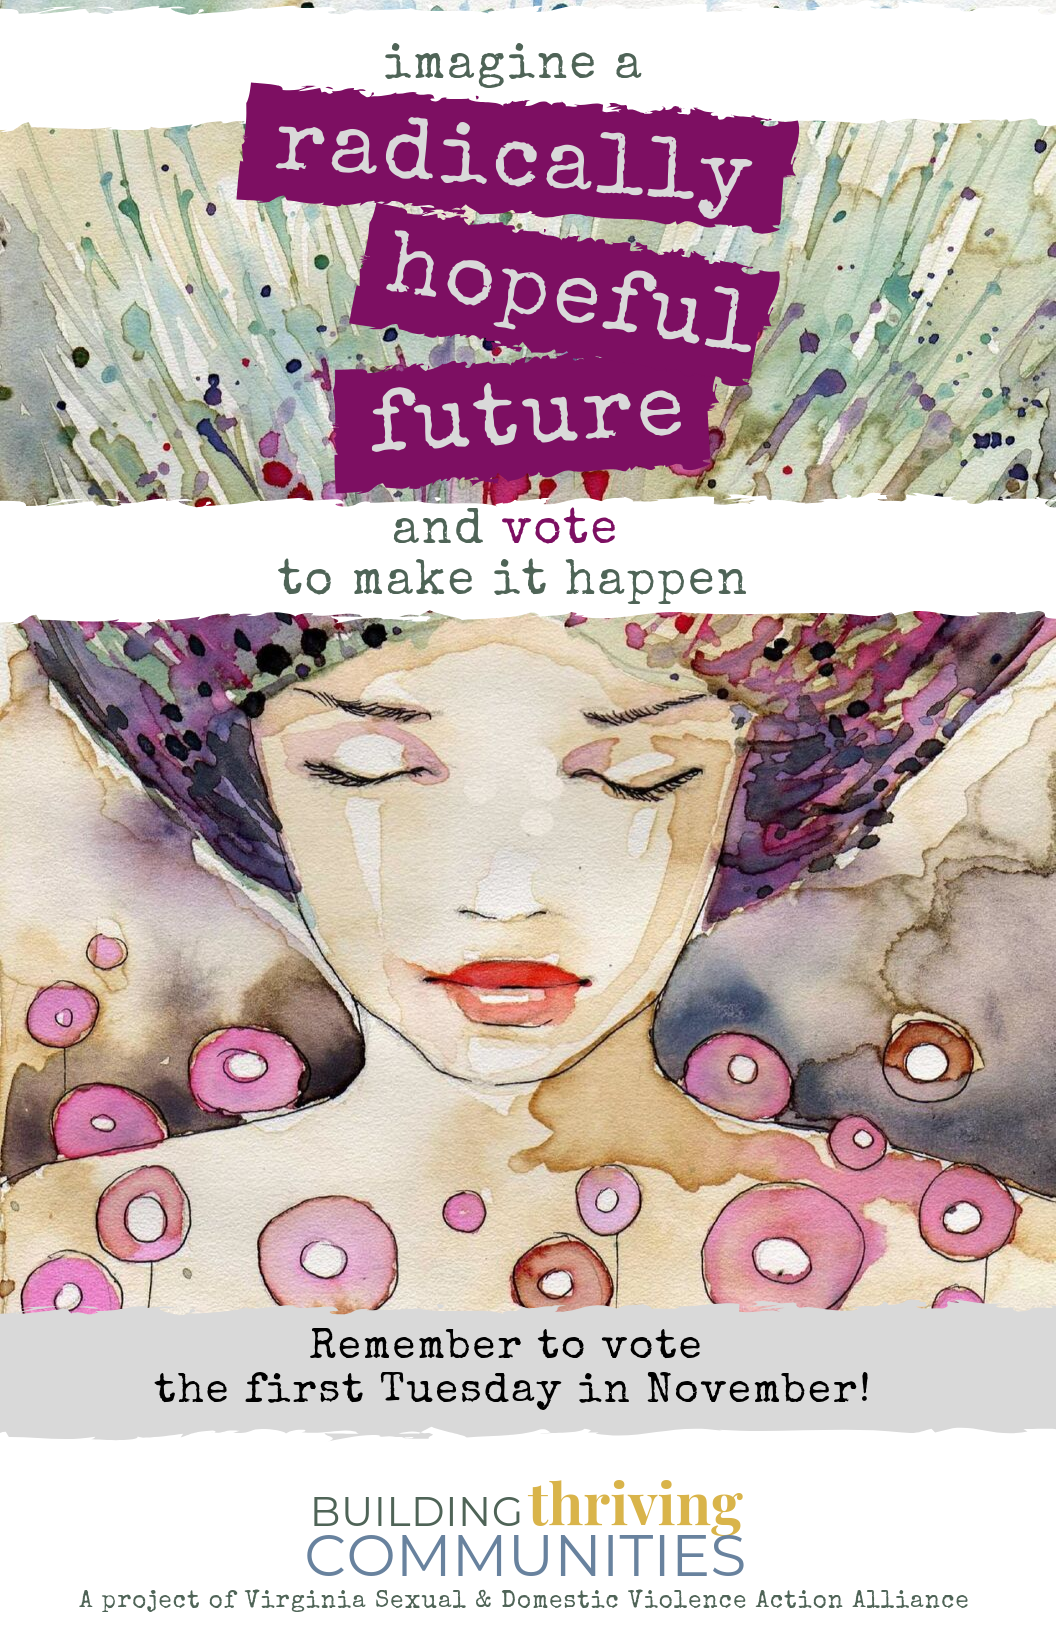 "The background is a watercolor image of a woman's face with her eyes closed. In the foreground is text that says, ""imagine a radically hopeful future and vote to make it happen. Remember to vote the first Tuesday in November!"" with stylized text ""Building Thriving Communities: a project of the Virginia Sexual and Domestic Violence Action Alliance."""